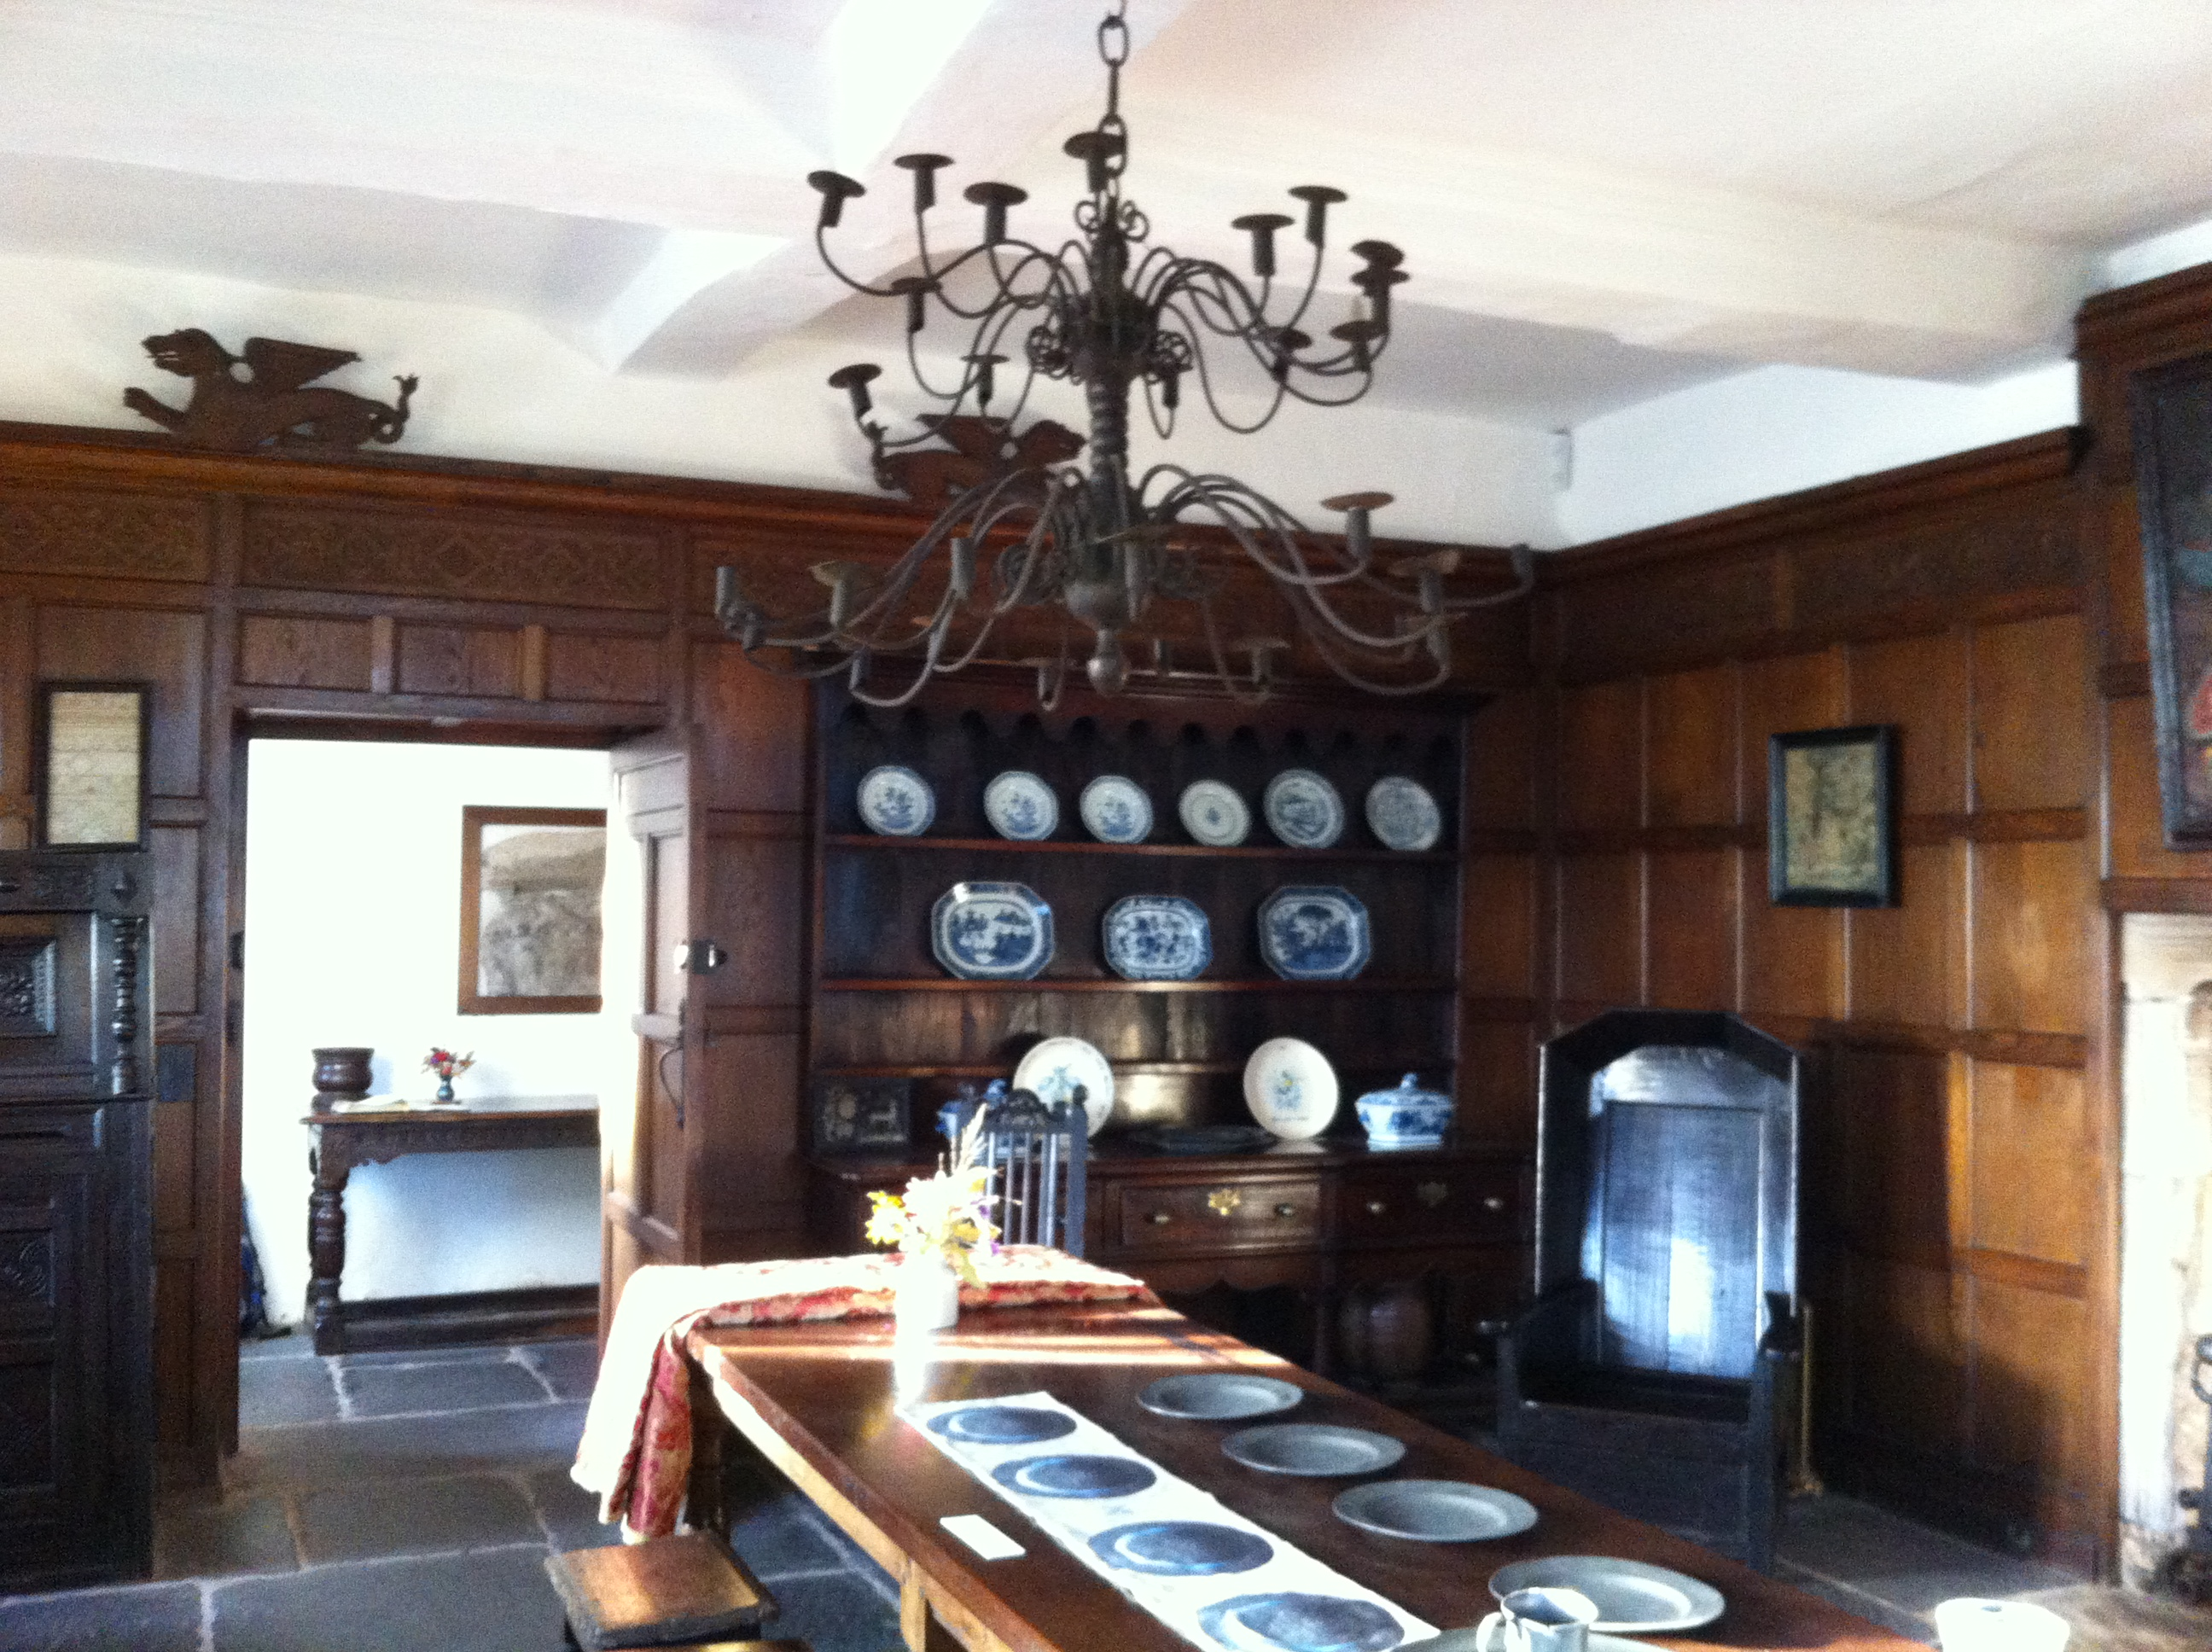 The dining room of Swarthmoor Hall. On the table is a runner with digitally printed plates mirroring the real plates on the table. each imprinted with quotes from the Household account book of Sarah Fell